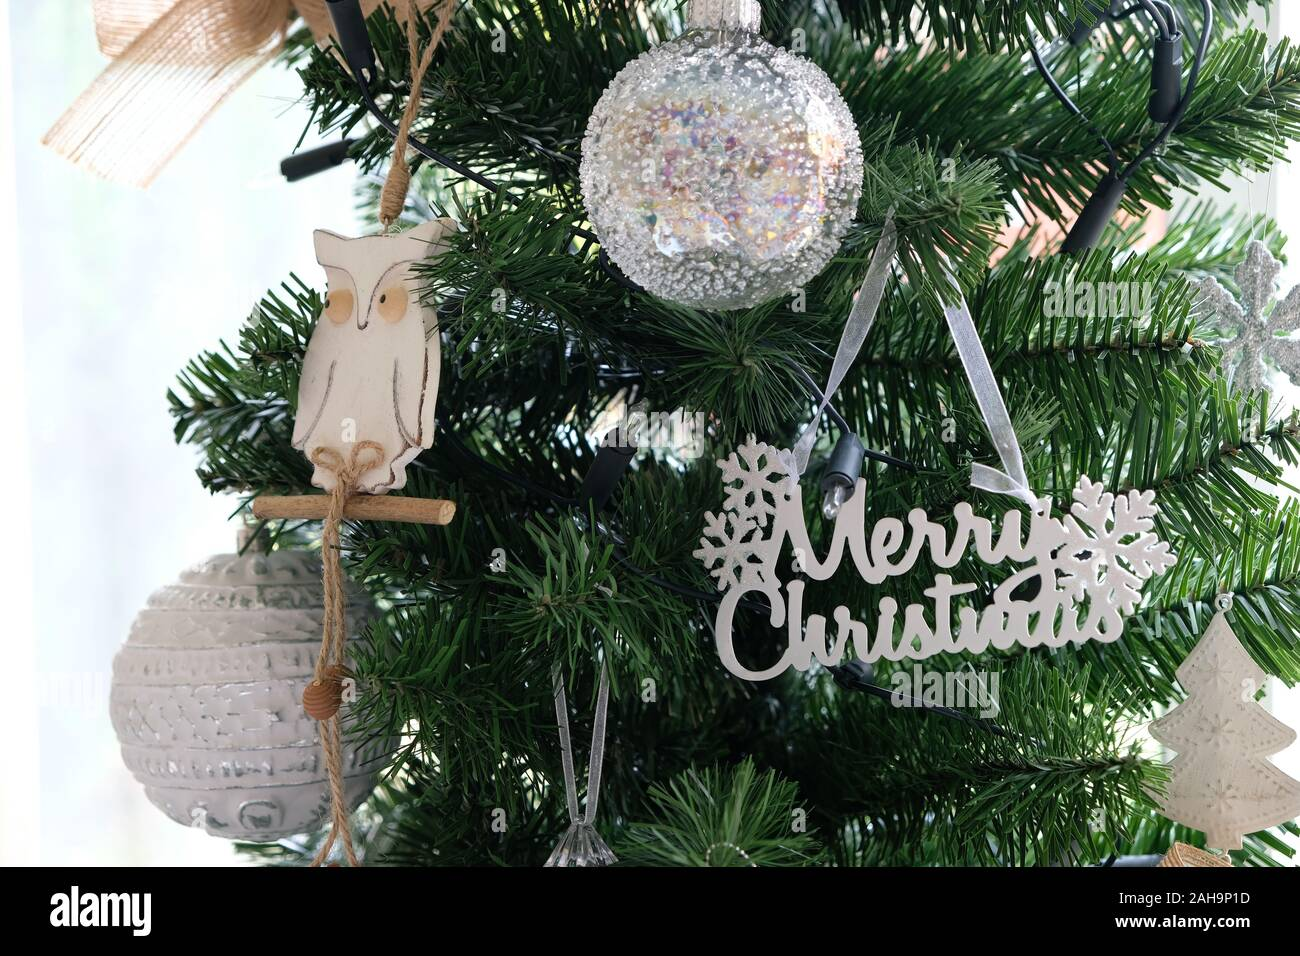 December 2019 White And Silver Christmas Decorations Hang On A Traditional Artificial Green Christmas Tree Stock Photo Alamy